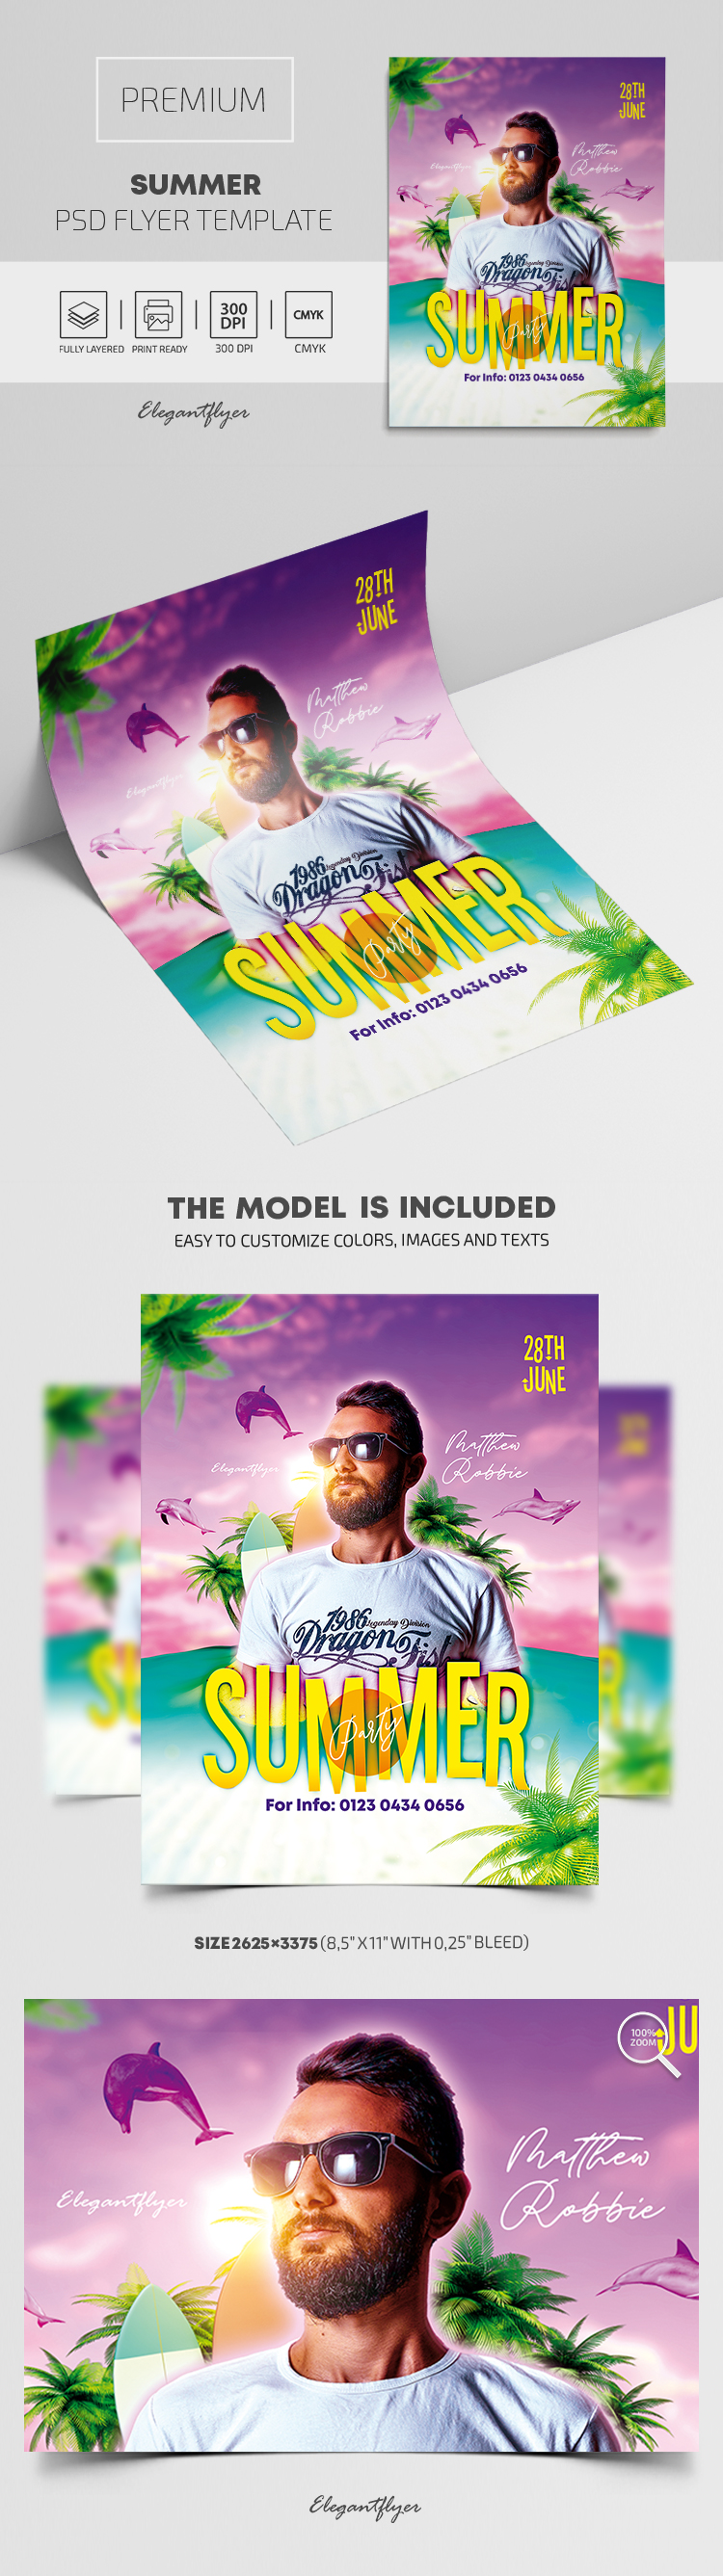 Summer – Premium PSD Flyer Template